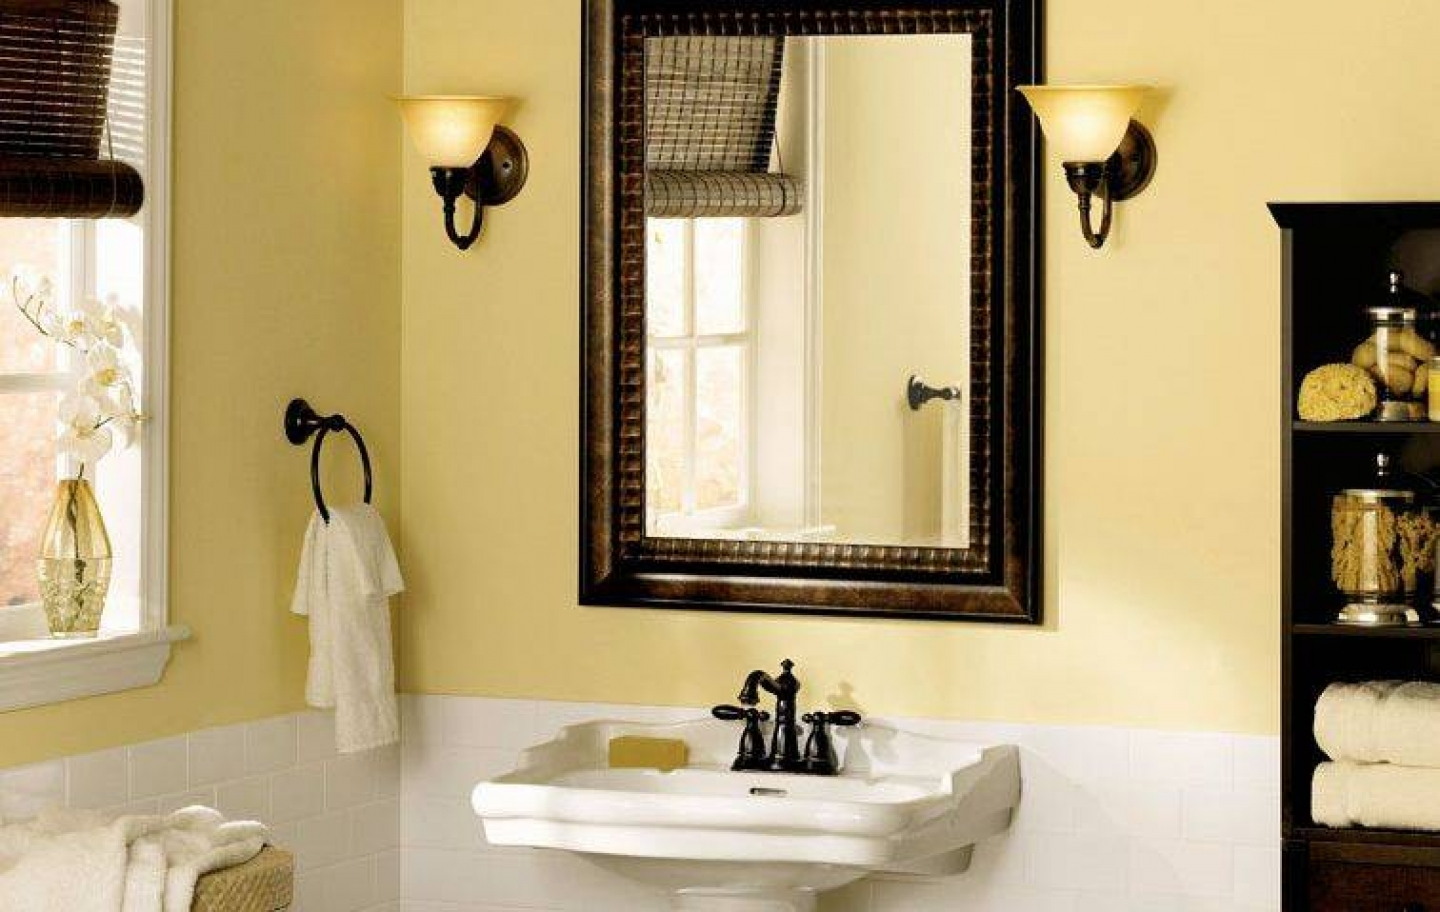 Framed Bathroom Mirrors Also Small Decorative Mirrors Also Frame With Mirror Also Framed Wall Mirrors Decorative Framed Bathroom Mirrors 2 Or 1 Inspiration Home Magazine